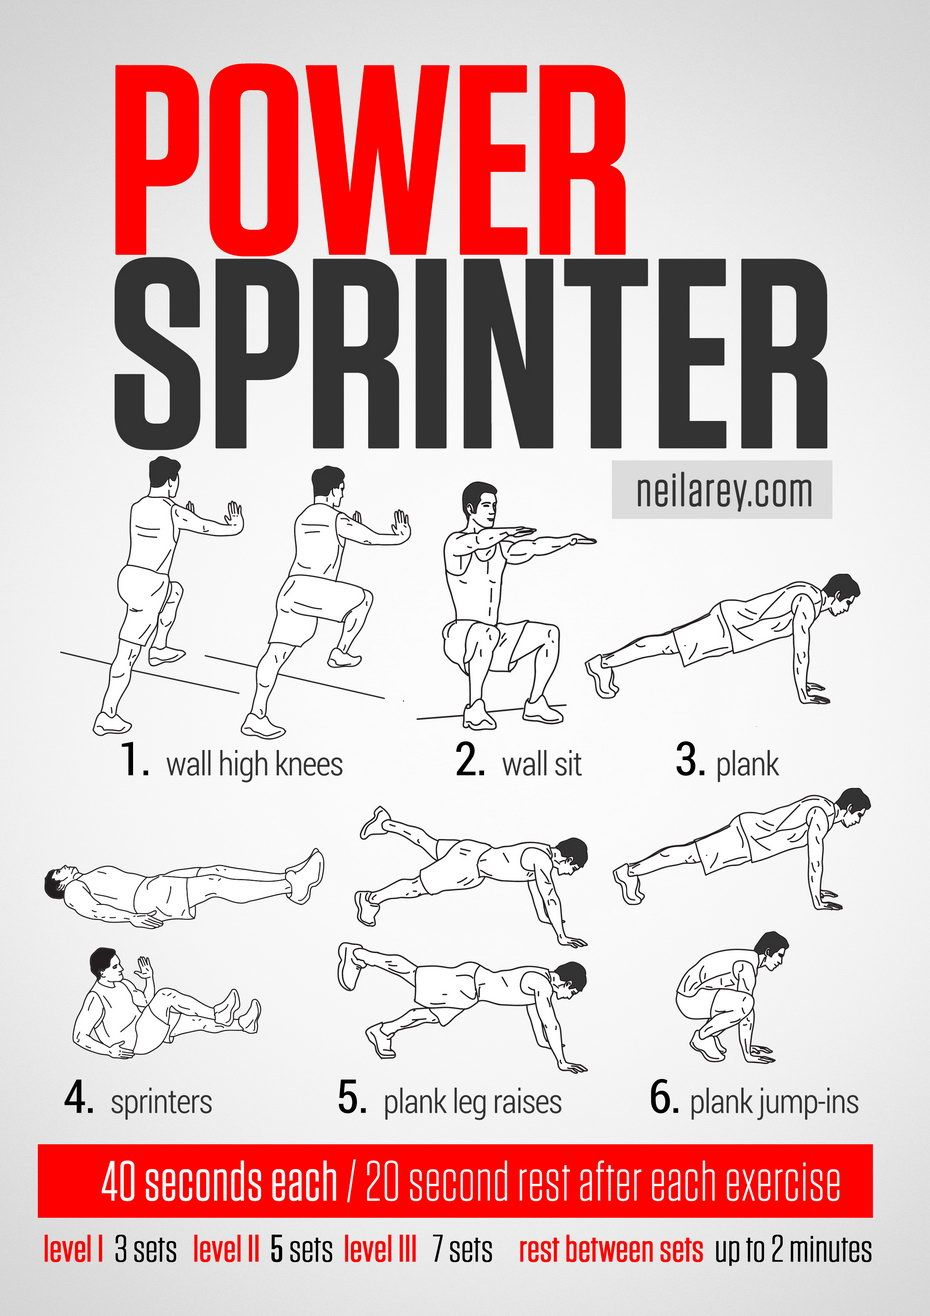 Good workouts for sprinters